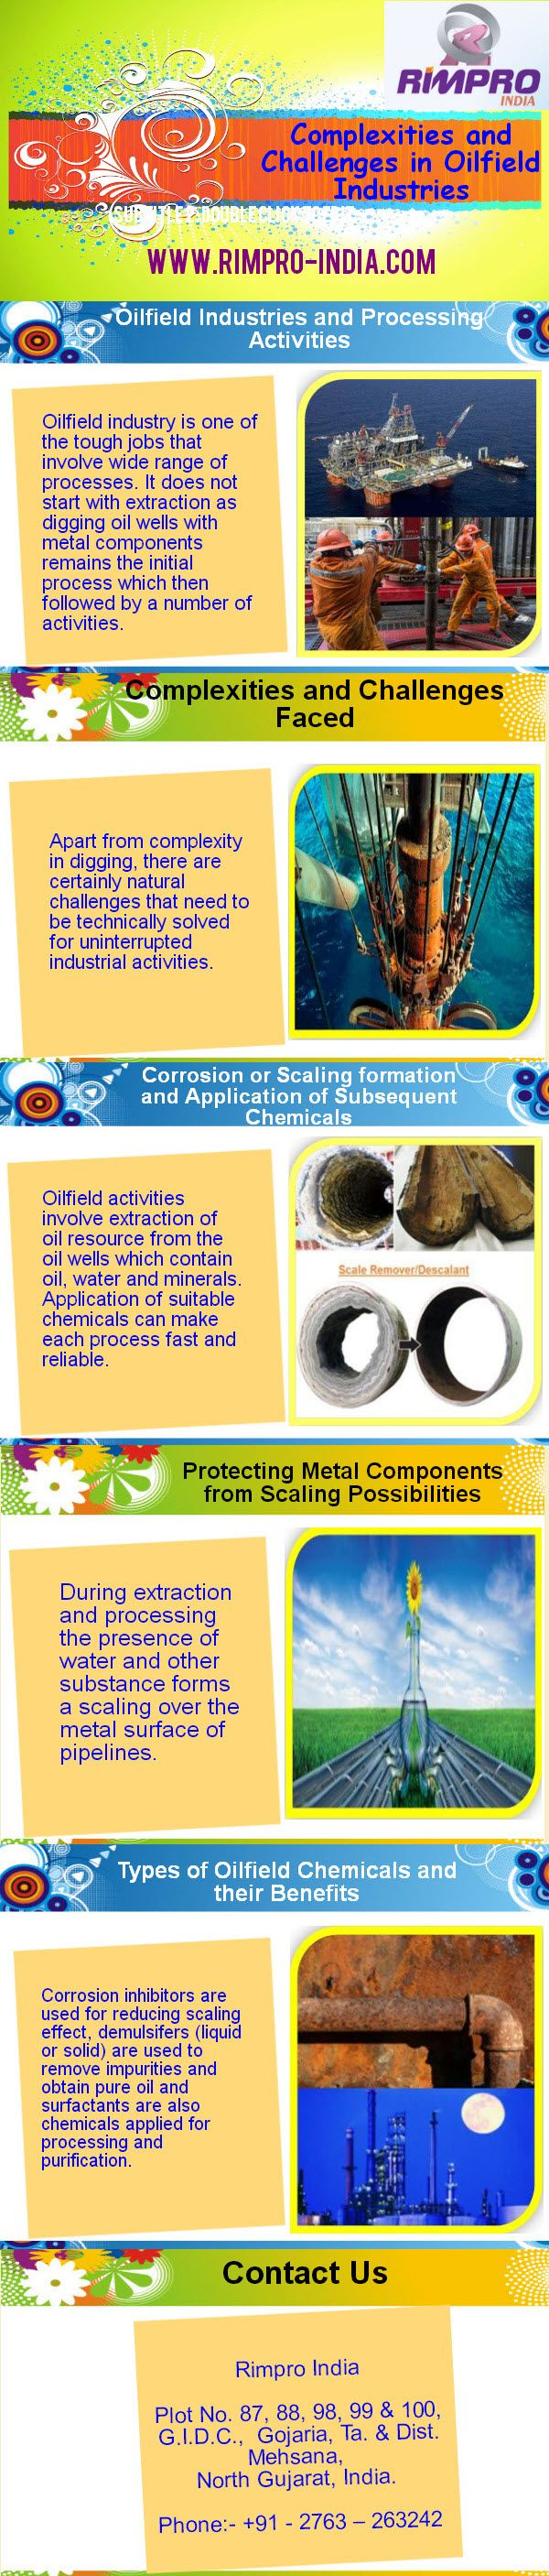 http://www.rimpro-india.com/articles1/complexities-and-challenges-in-oilfield-industries-infograph.html  Infograph presents the development processing for oilfield industries which include complexities and challenges faced, corrosion or scaling formation and application of subsequent chemicals, protecting metal components from scaling possibilities and oilfield chemicals benefits. For more, visit at above link or contact us on http://www.rimpro-india.com/contact-us.html.